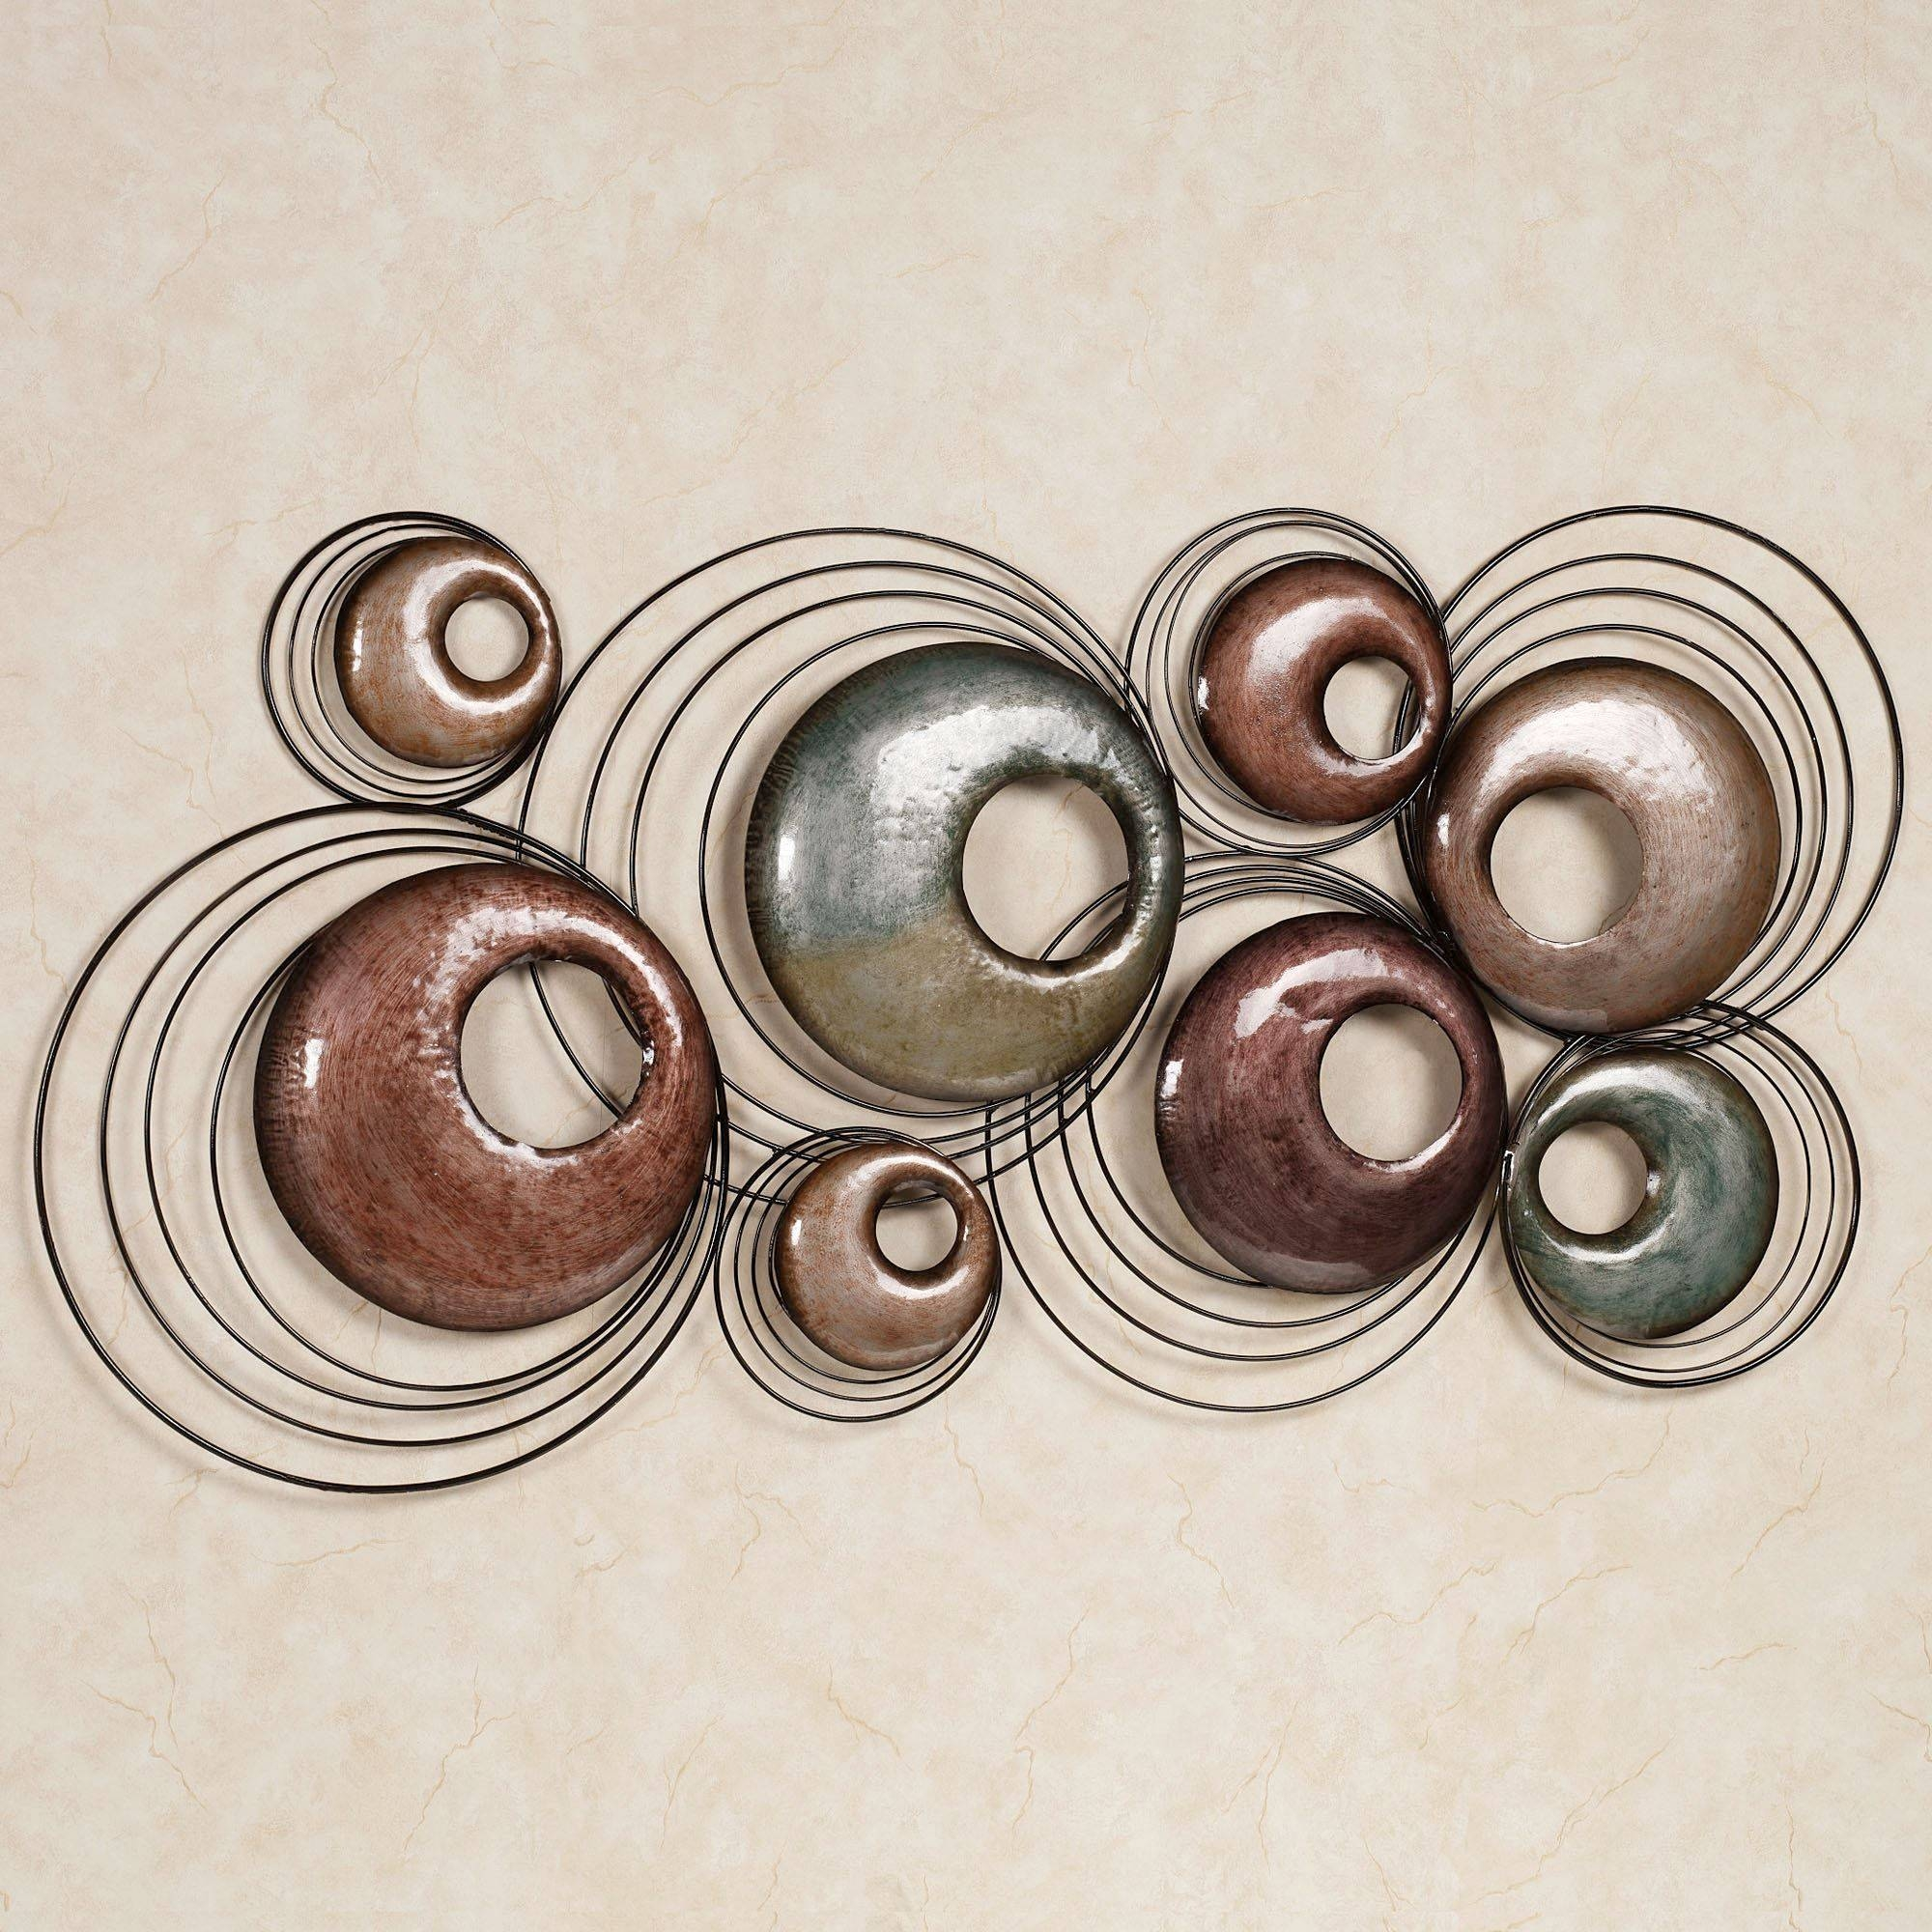 Echo Metal Wall Sculpture Art Intended For Current Circle Metal Wall Art (Gallery 14 of 20)